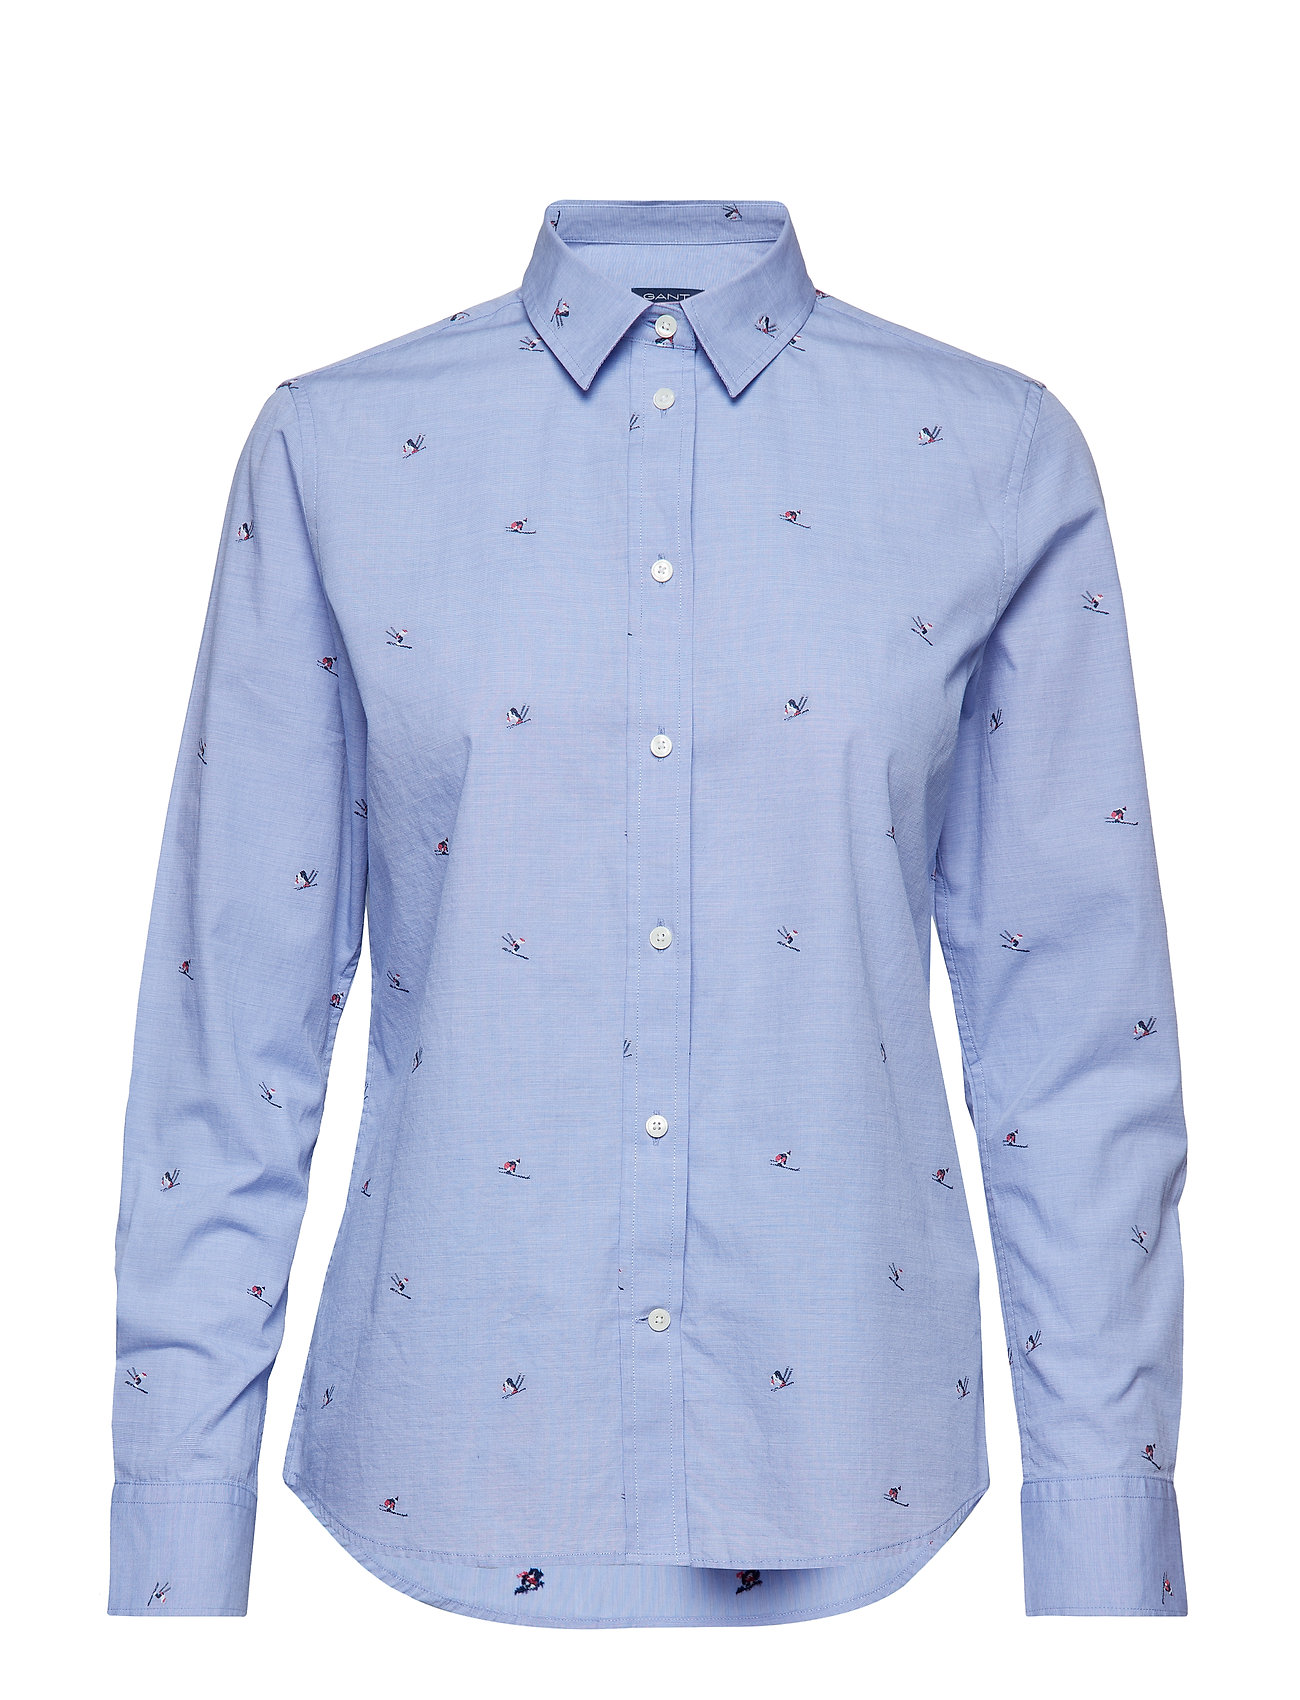 Gant O1. WINTER SKIER SHIRT - PERIWINKLE BLUE